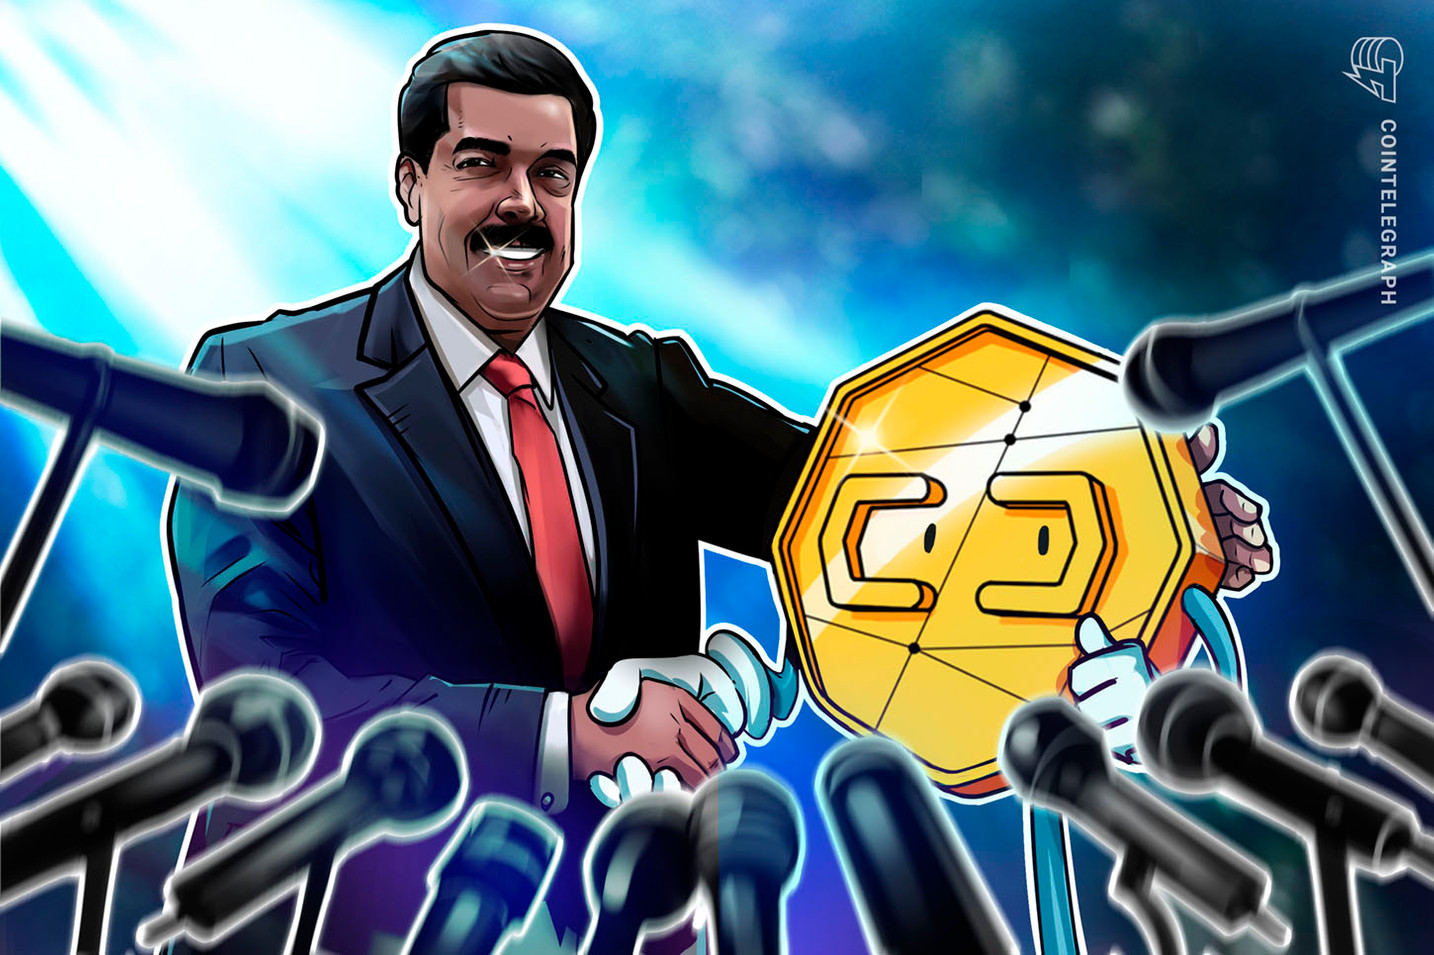 Venezuela President Maduro Is Not Pro-Crypto, He Just Likes Petro